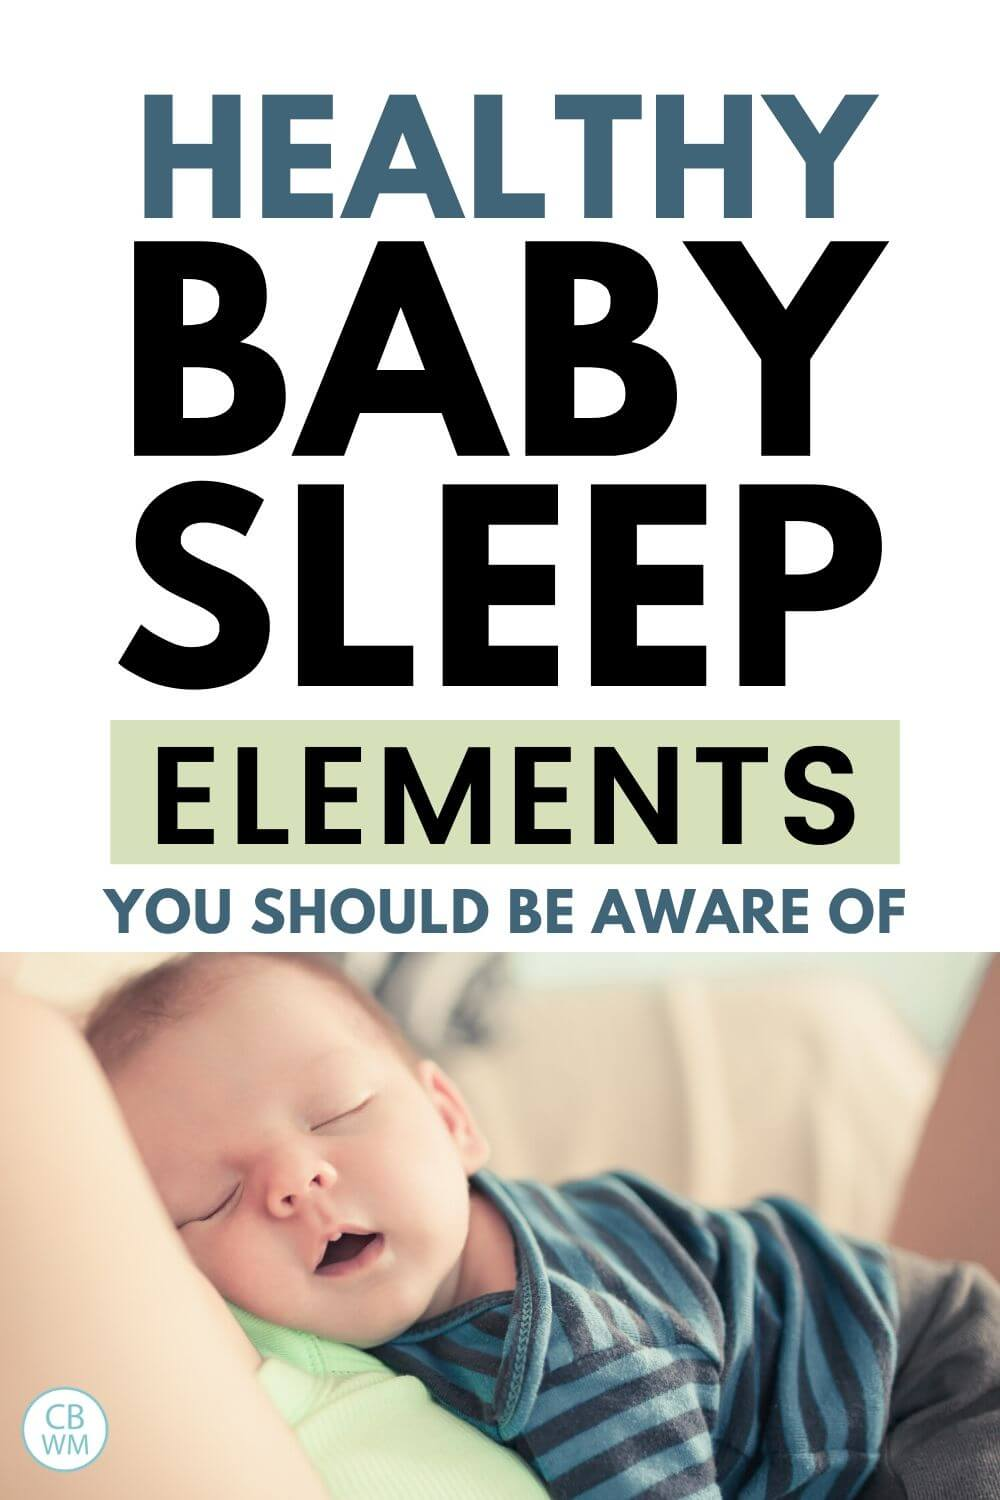 Healthy Baby Sleep Elements Pinnable Image